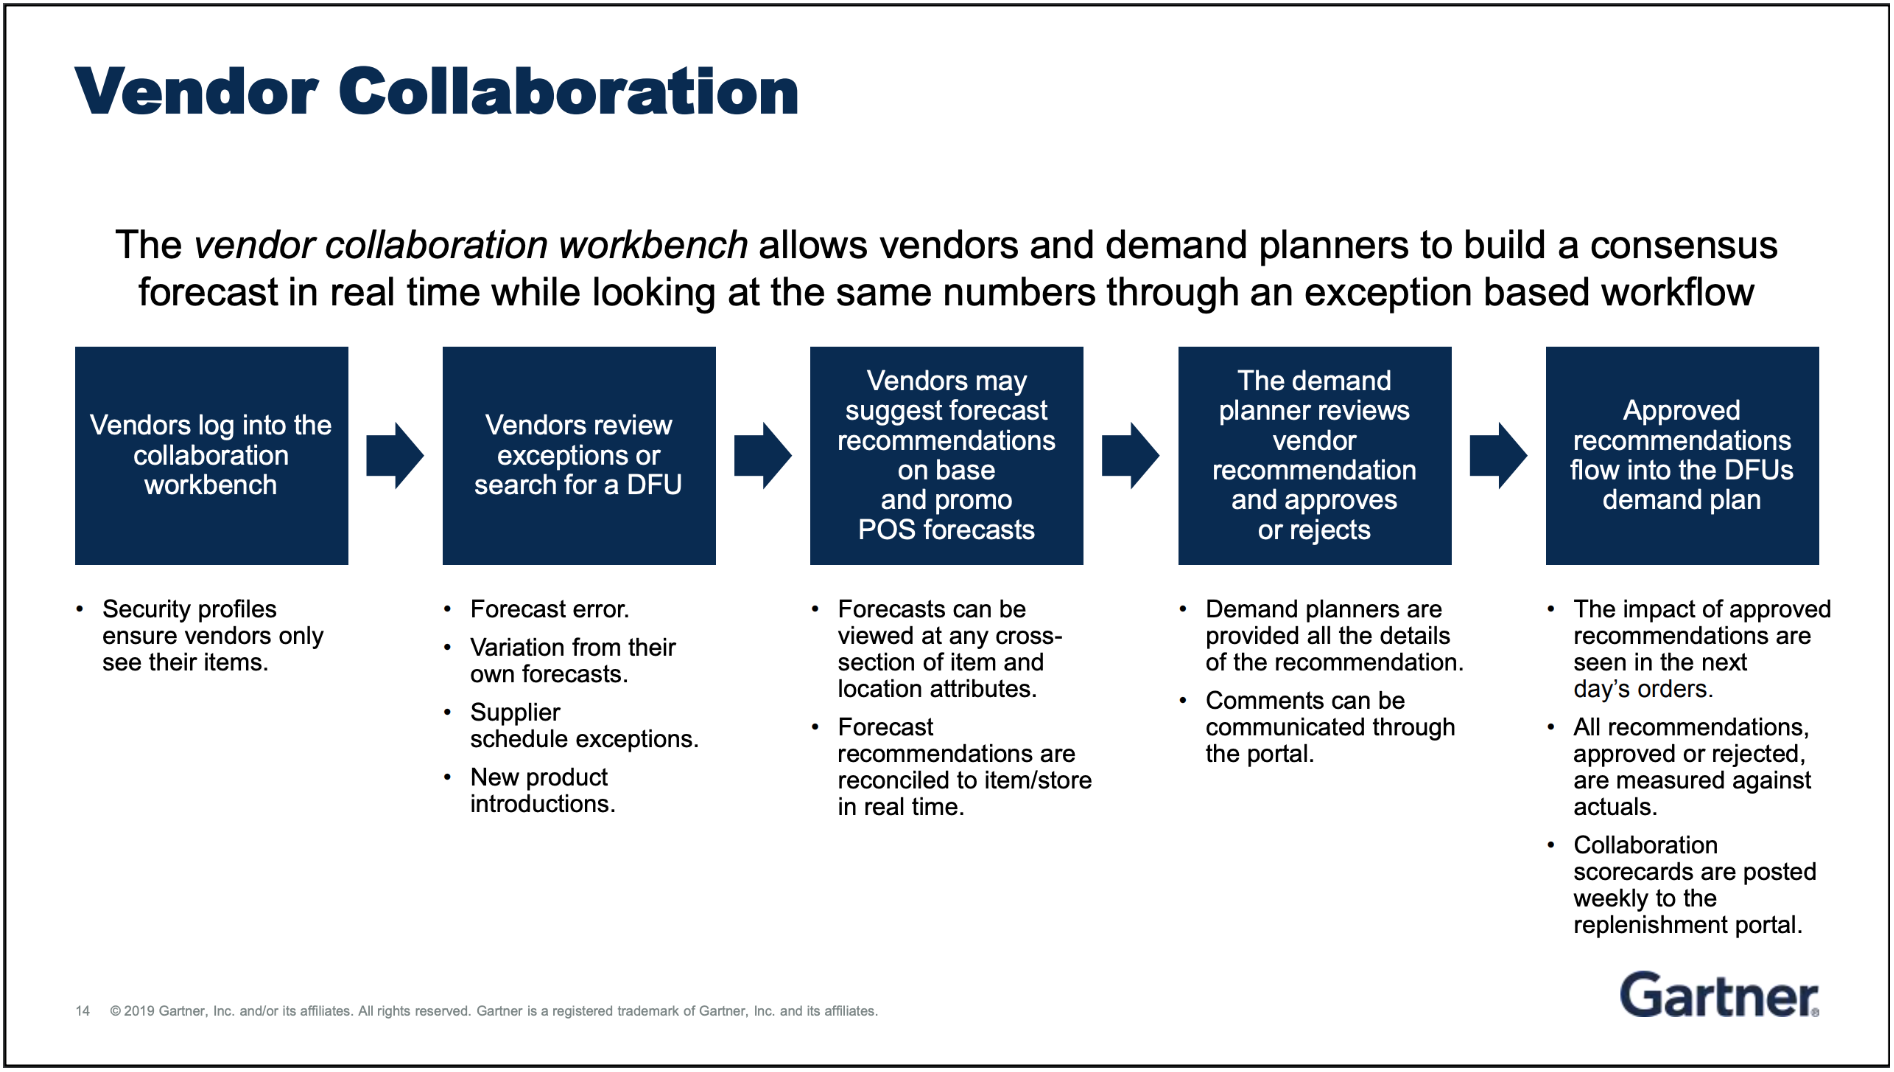 Top 5 takeaways from the 2019 Gartner Supply Chain Conference